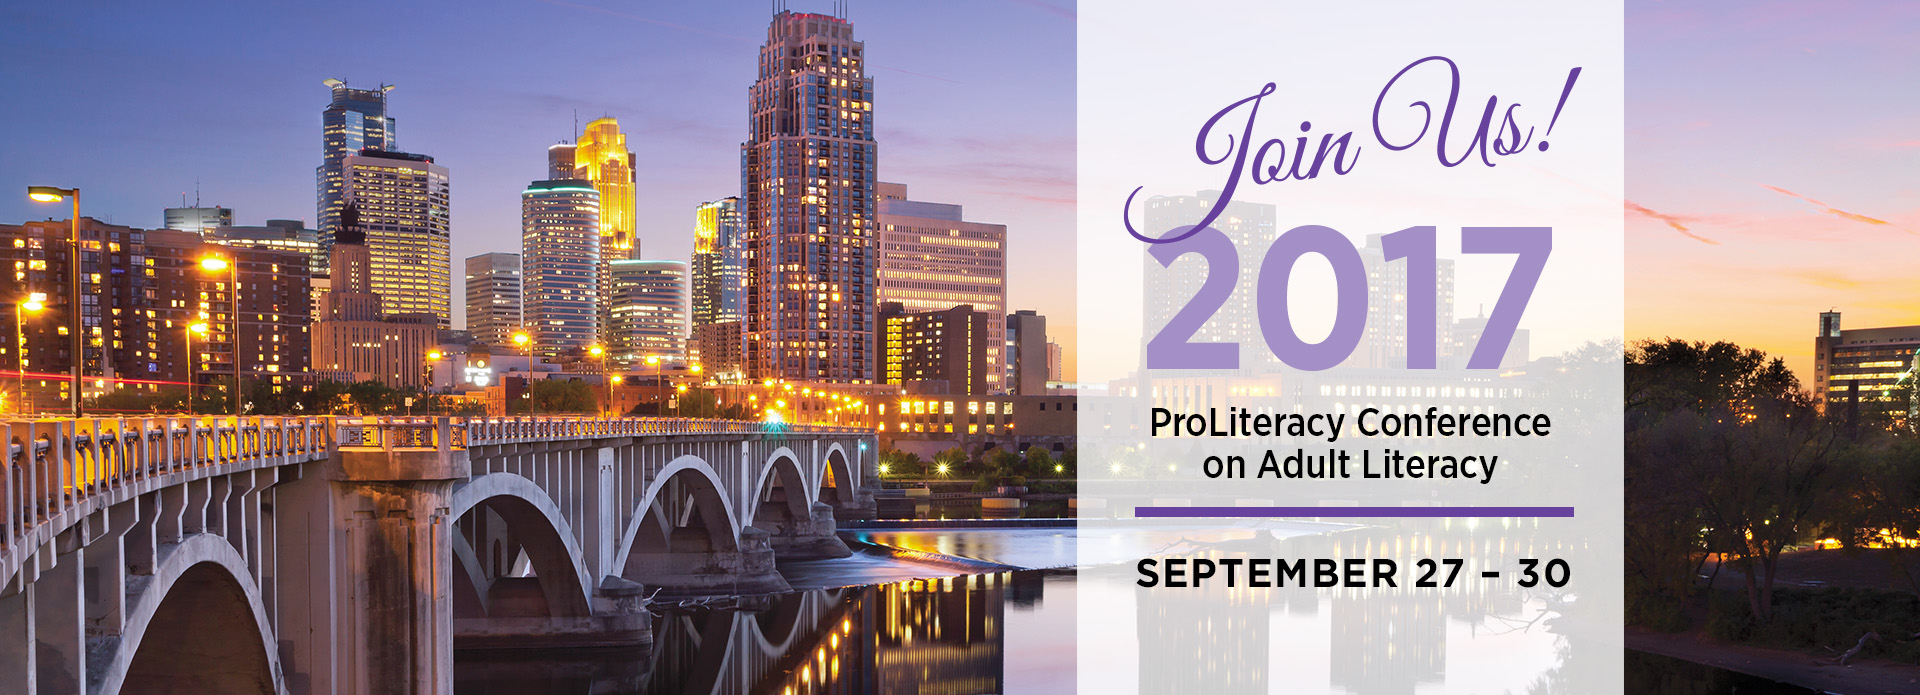 ProLiteracy Conference on Adult Literacy